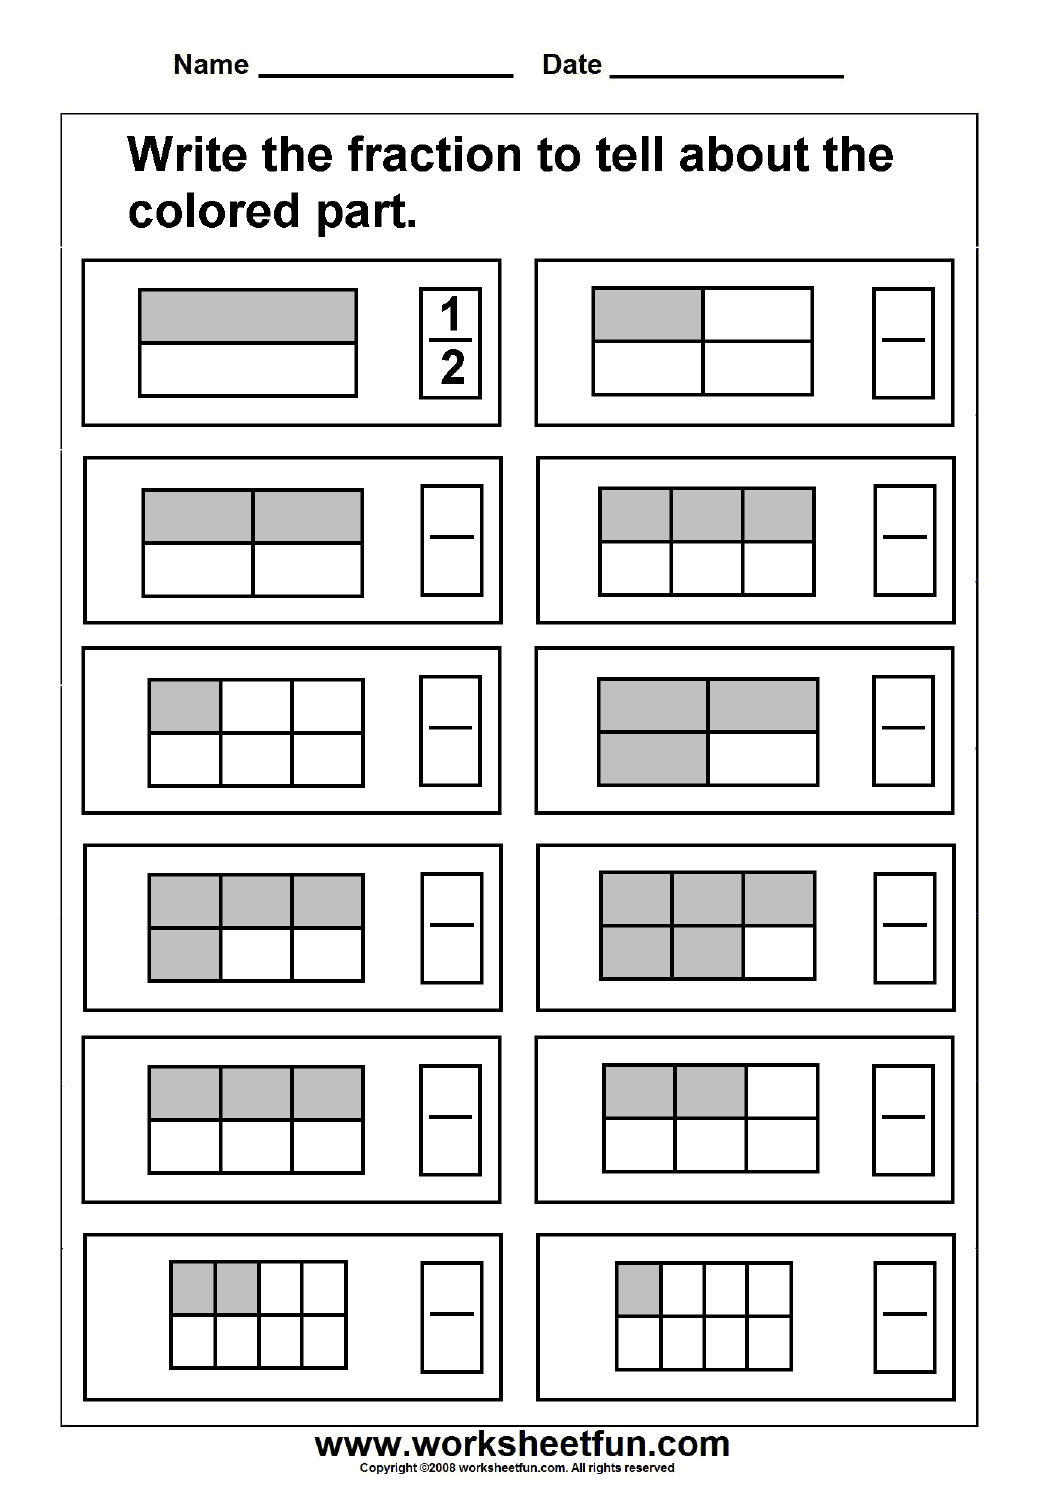 worksheet Fraction Worksheets fraction free printable worksheets worksheetfun model 3 worksheets